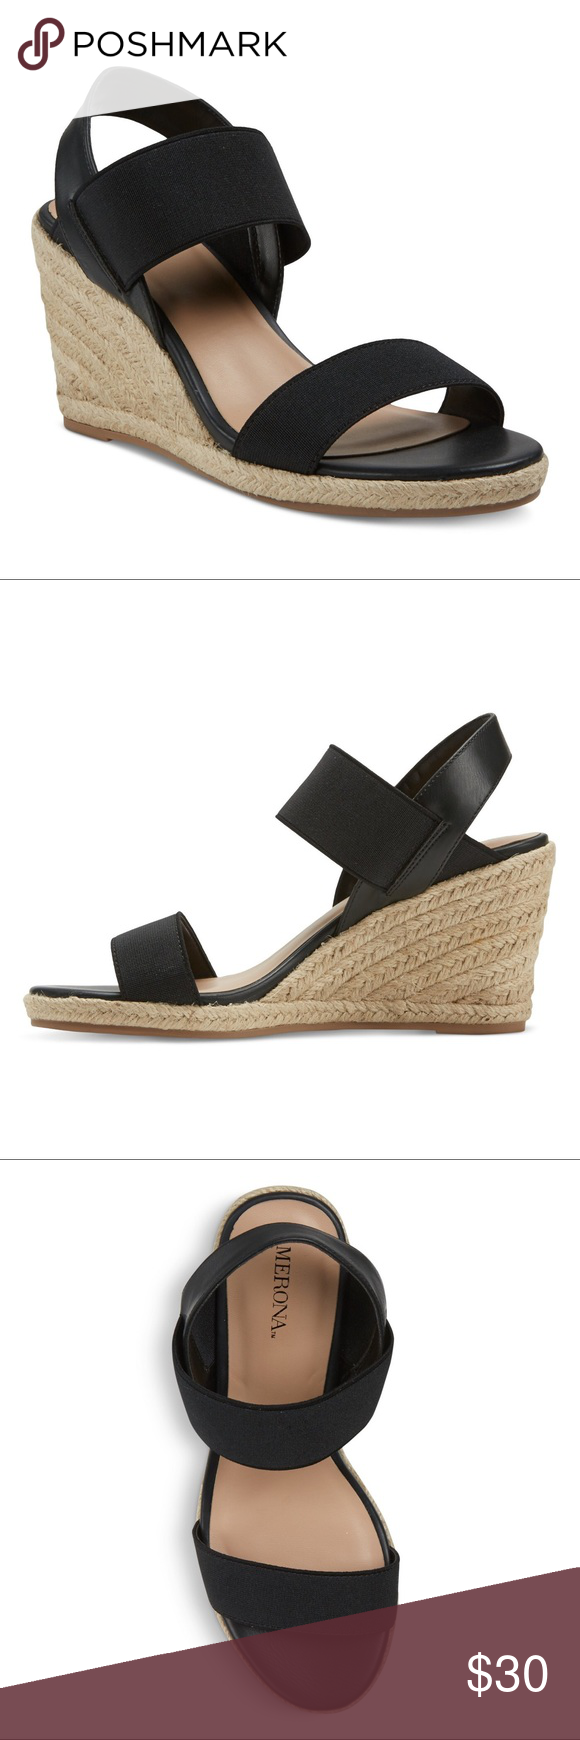 189954d5c1 Merona Janet Elastic Espadrille Wedge Sandals New Brand new with tags.  Available in sizes shown